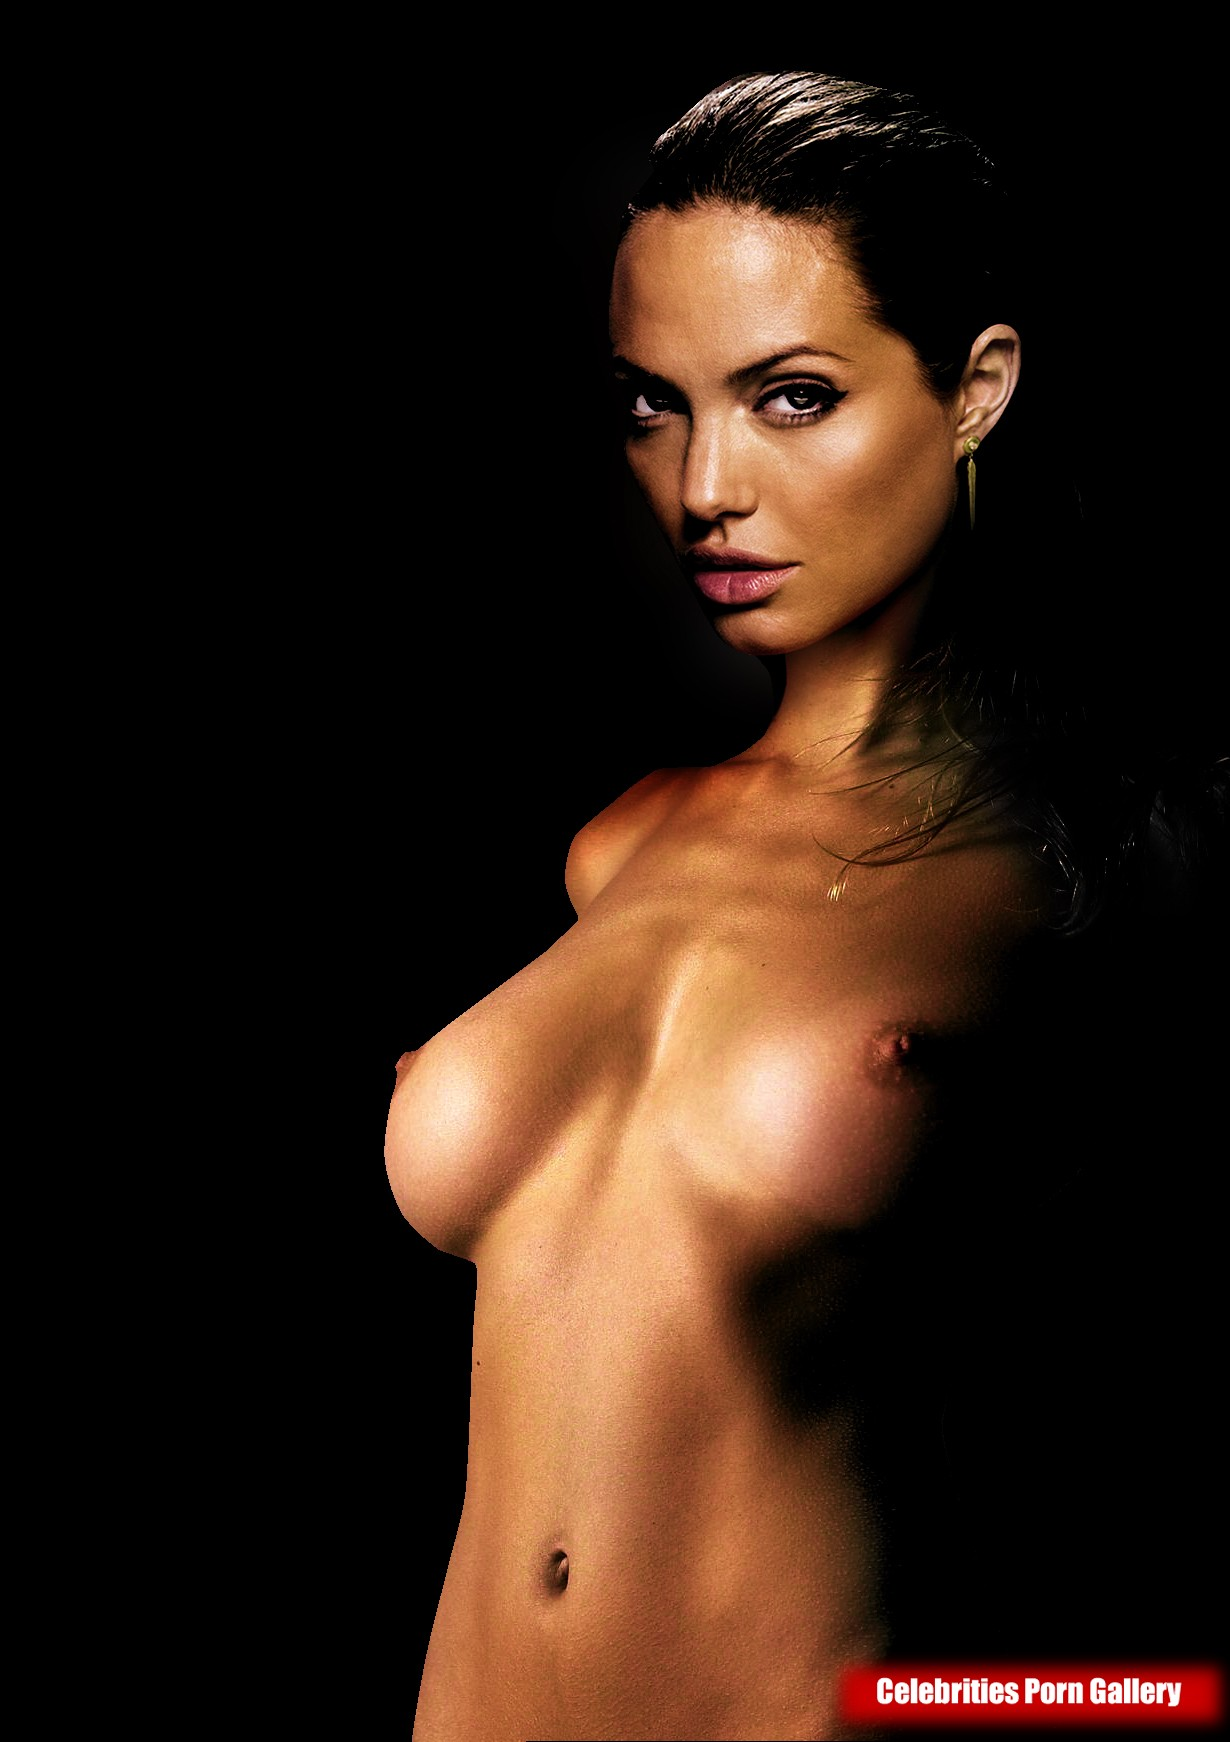 Angelina jolie erotic photo shoot